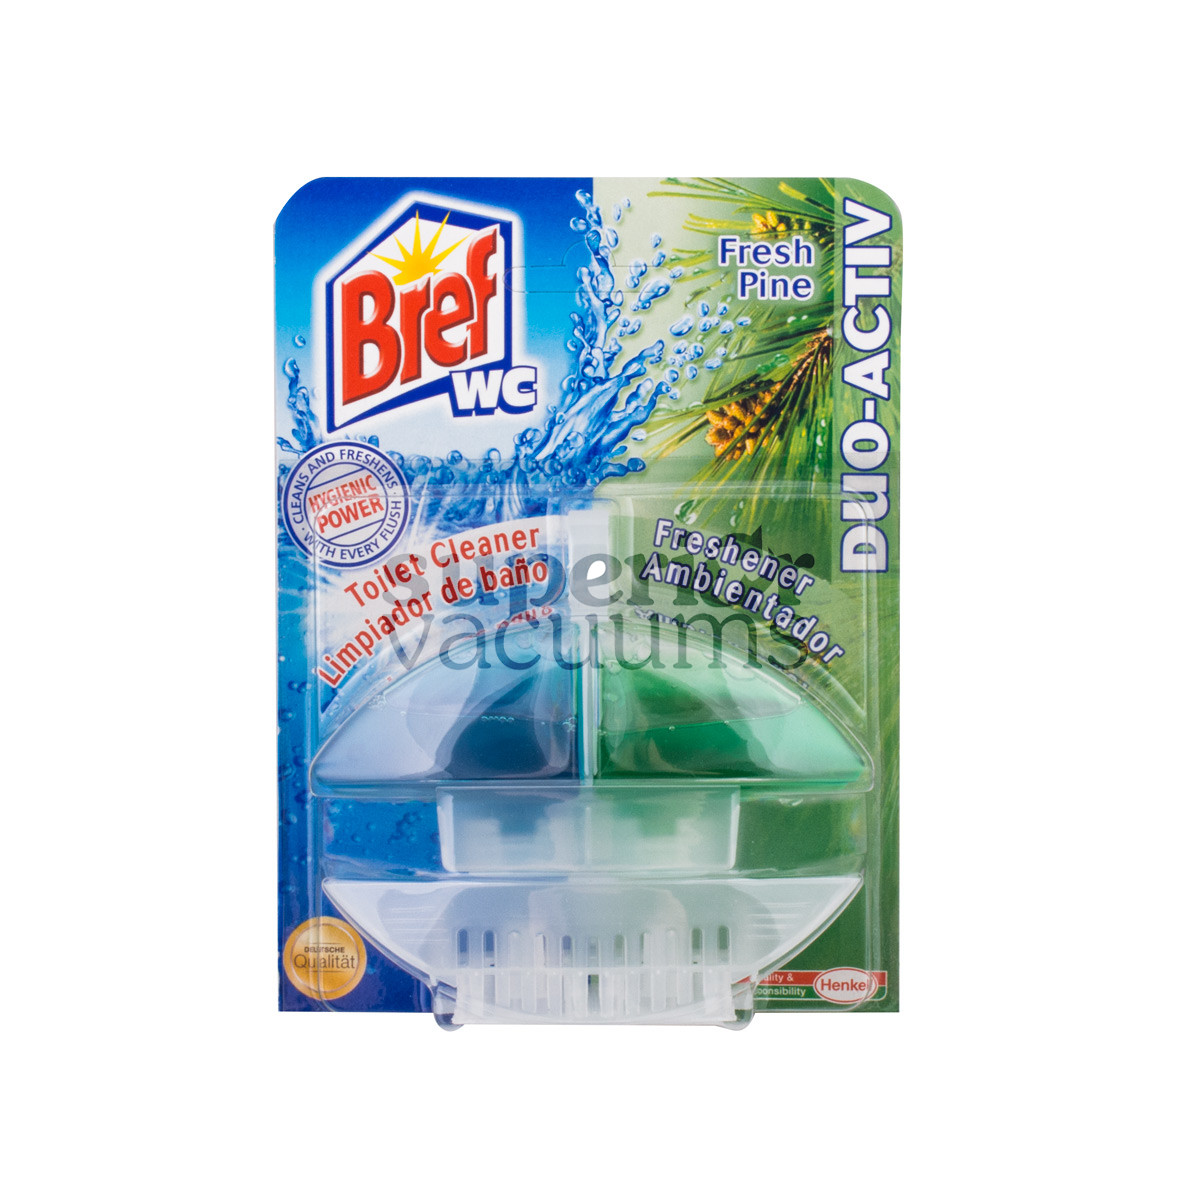 Bref Duo-Activ Toilet Cleaner And Freshener Pine 60Ml